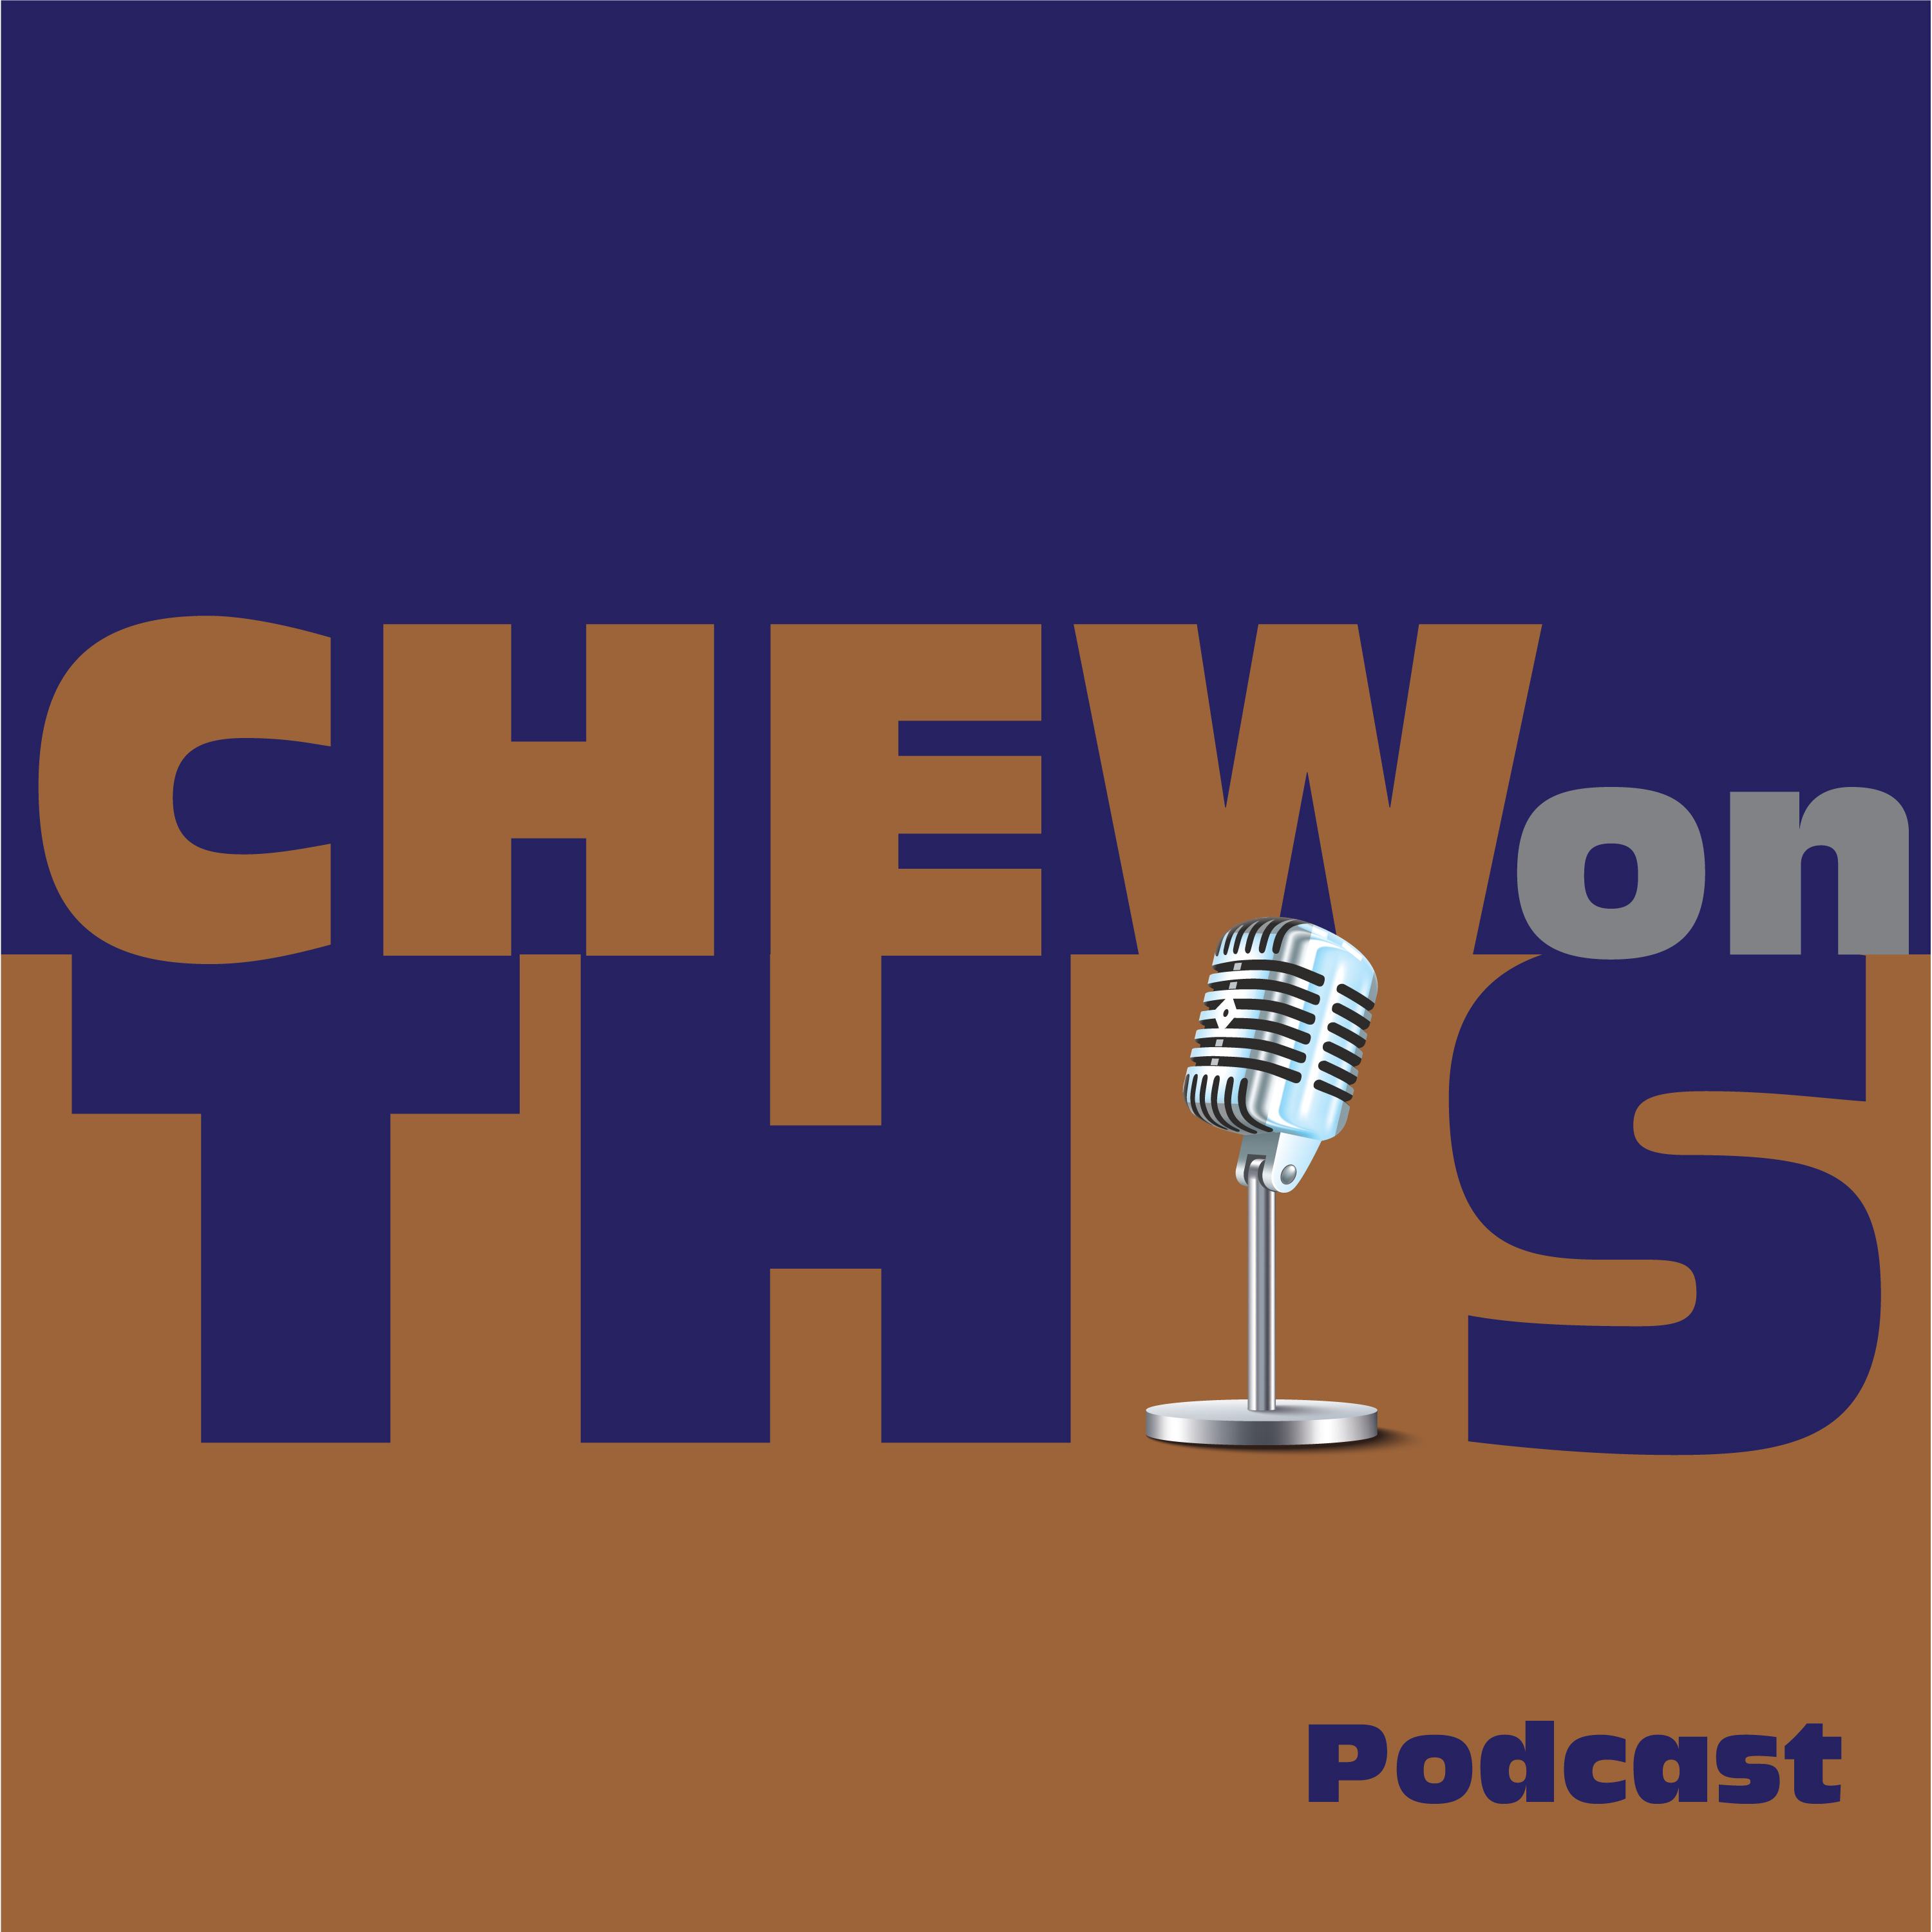 Chew on this: with the Wednesday crew show art